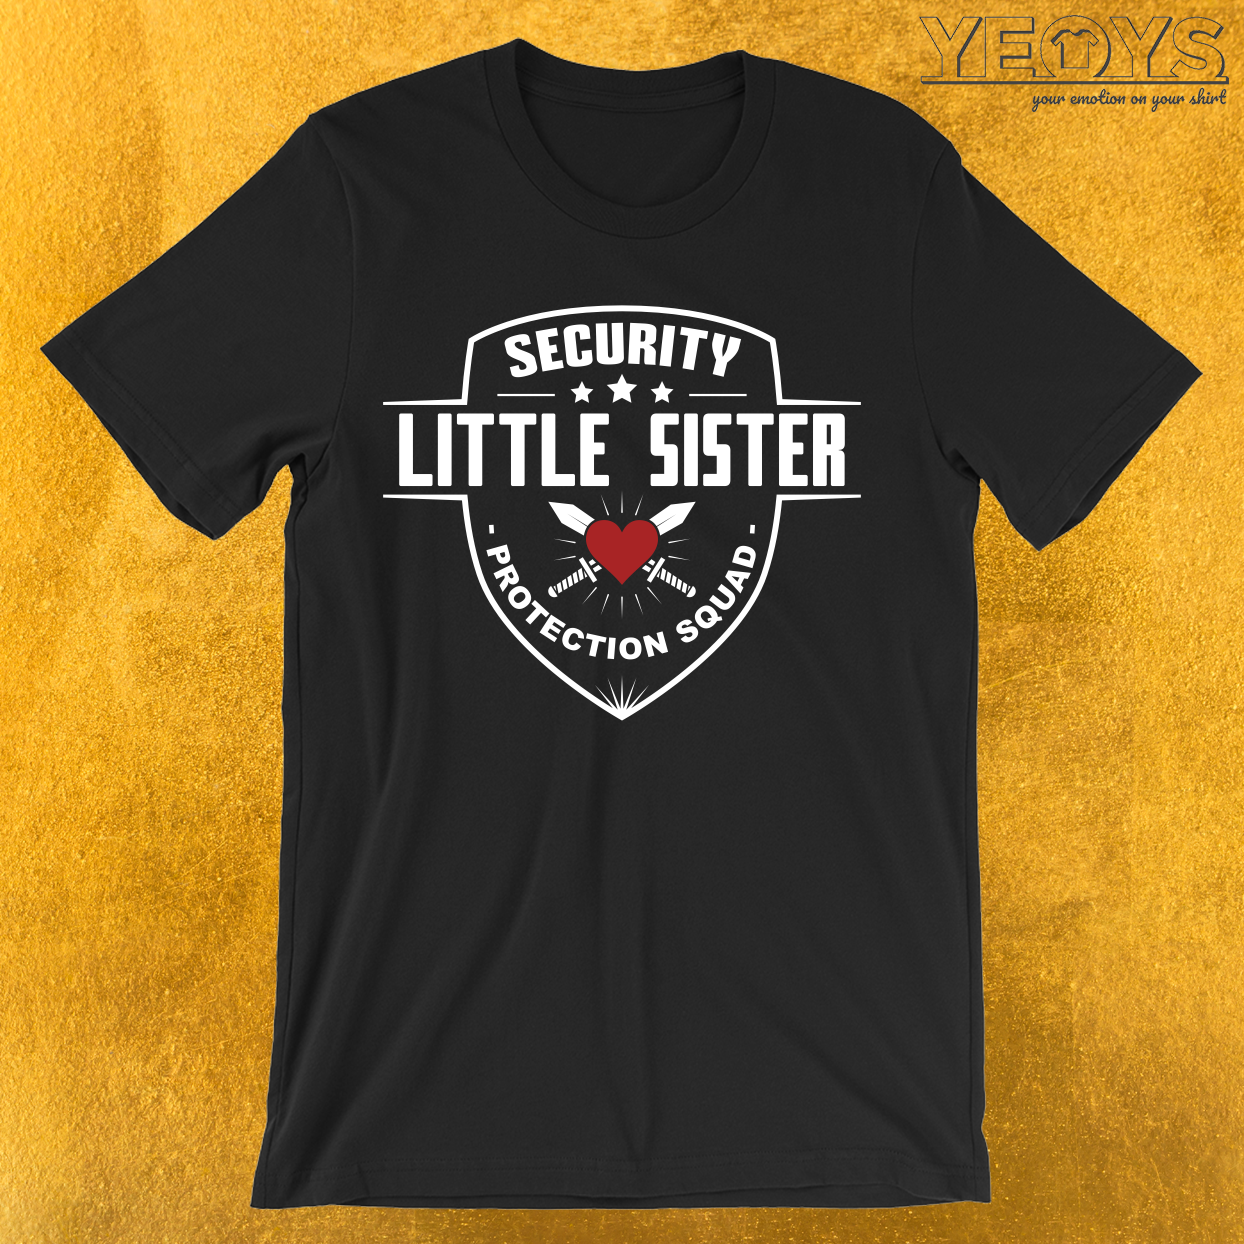 Security Little Sister Protection Squad T-Shirt